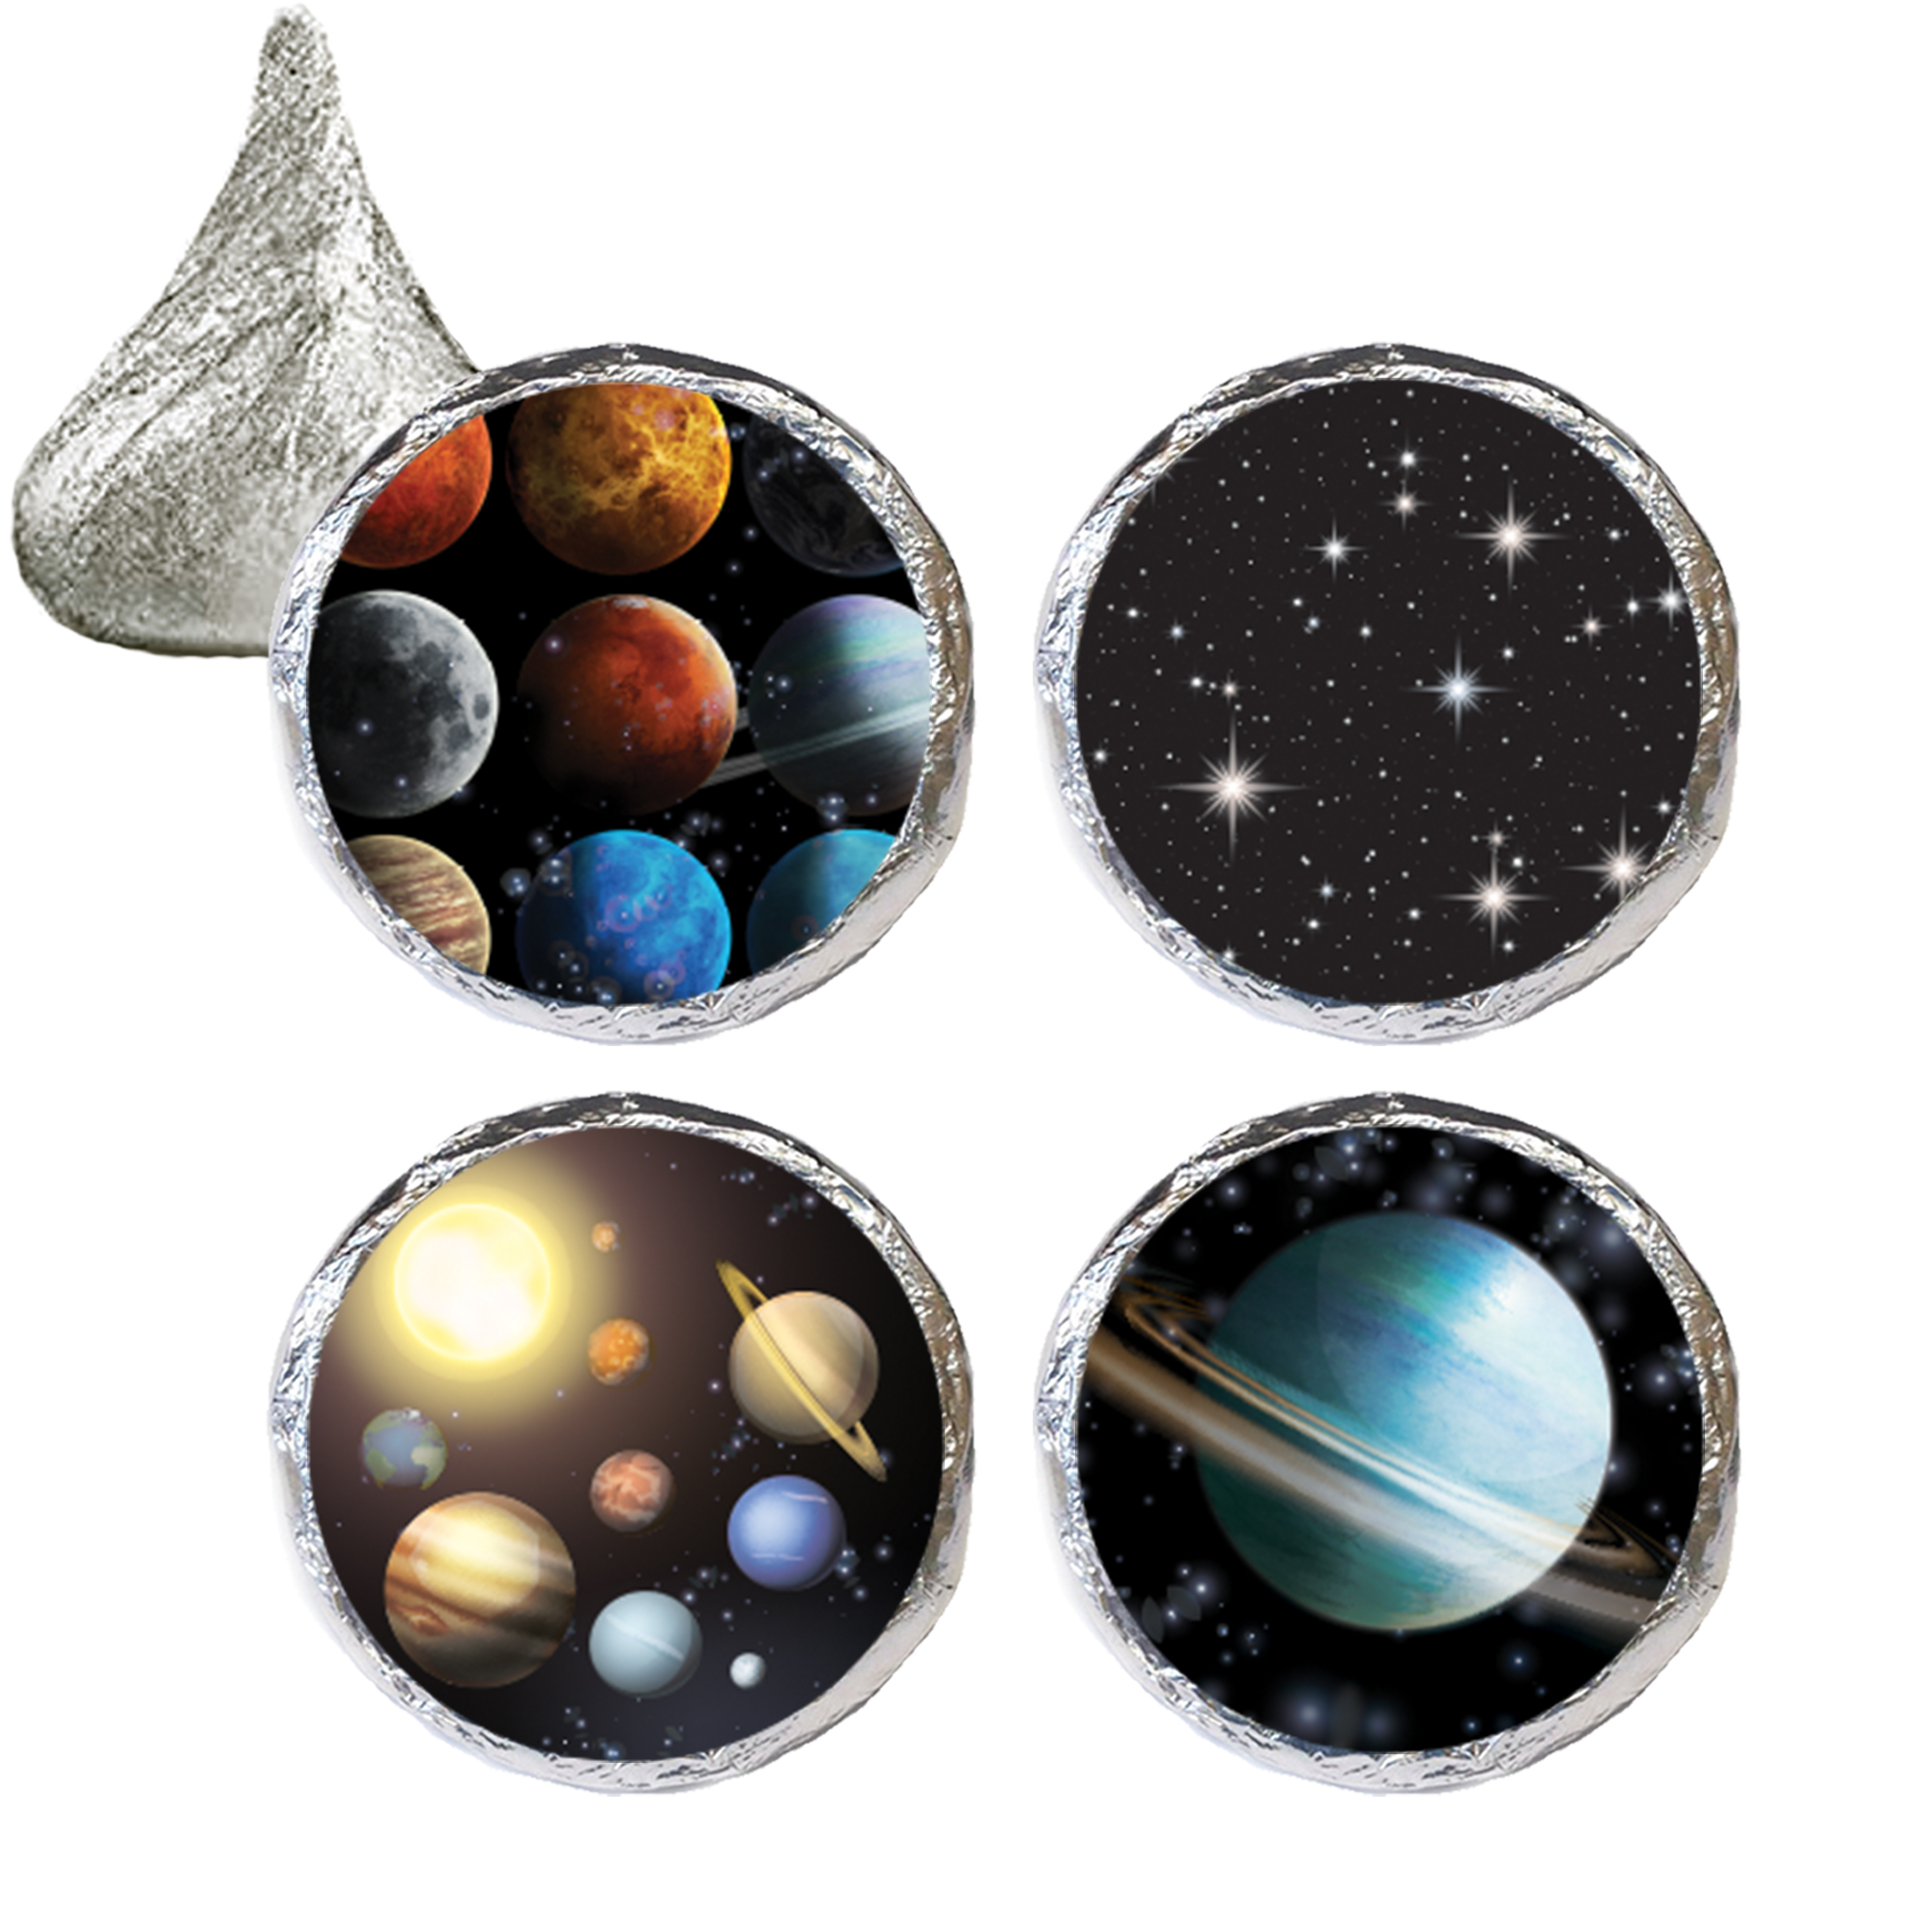 Outer Space Party Favor Stickers, 324ct, Outer Space Birthday Party Favors Solar System Galaxy Planets Birthday Party Supplies - 324 Count Stickers